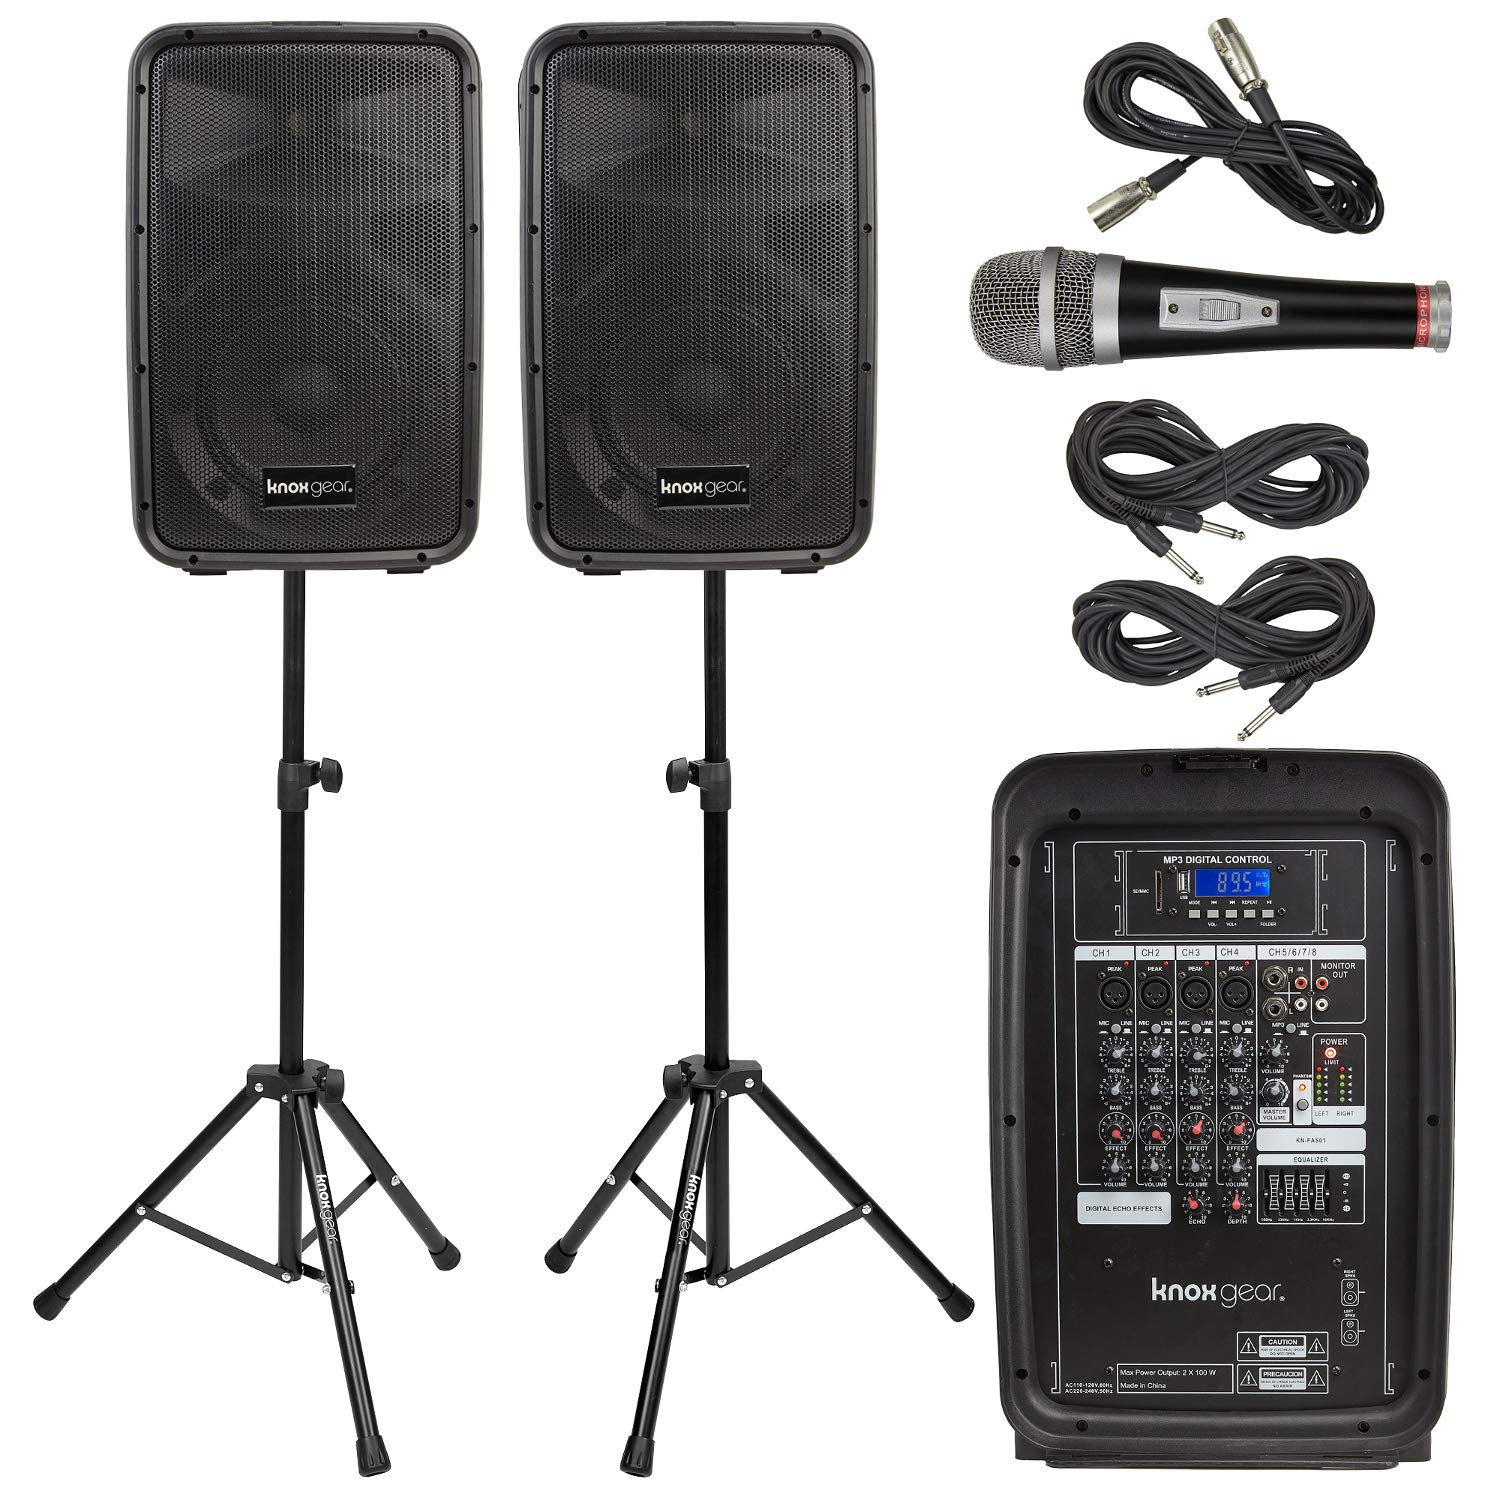 Knox Dual Speaker and Mixer Kit - Portable 8'' 300 Watt DJ PA System with Wired Microphone, and Tripods - 8 Channel Amplifier - Bluetooth, USB, SD, 1/4'' Line RCA, XLR Inputs by Knox Gear